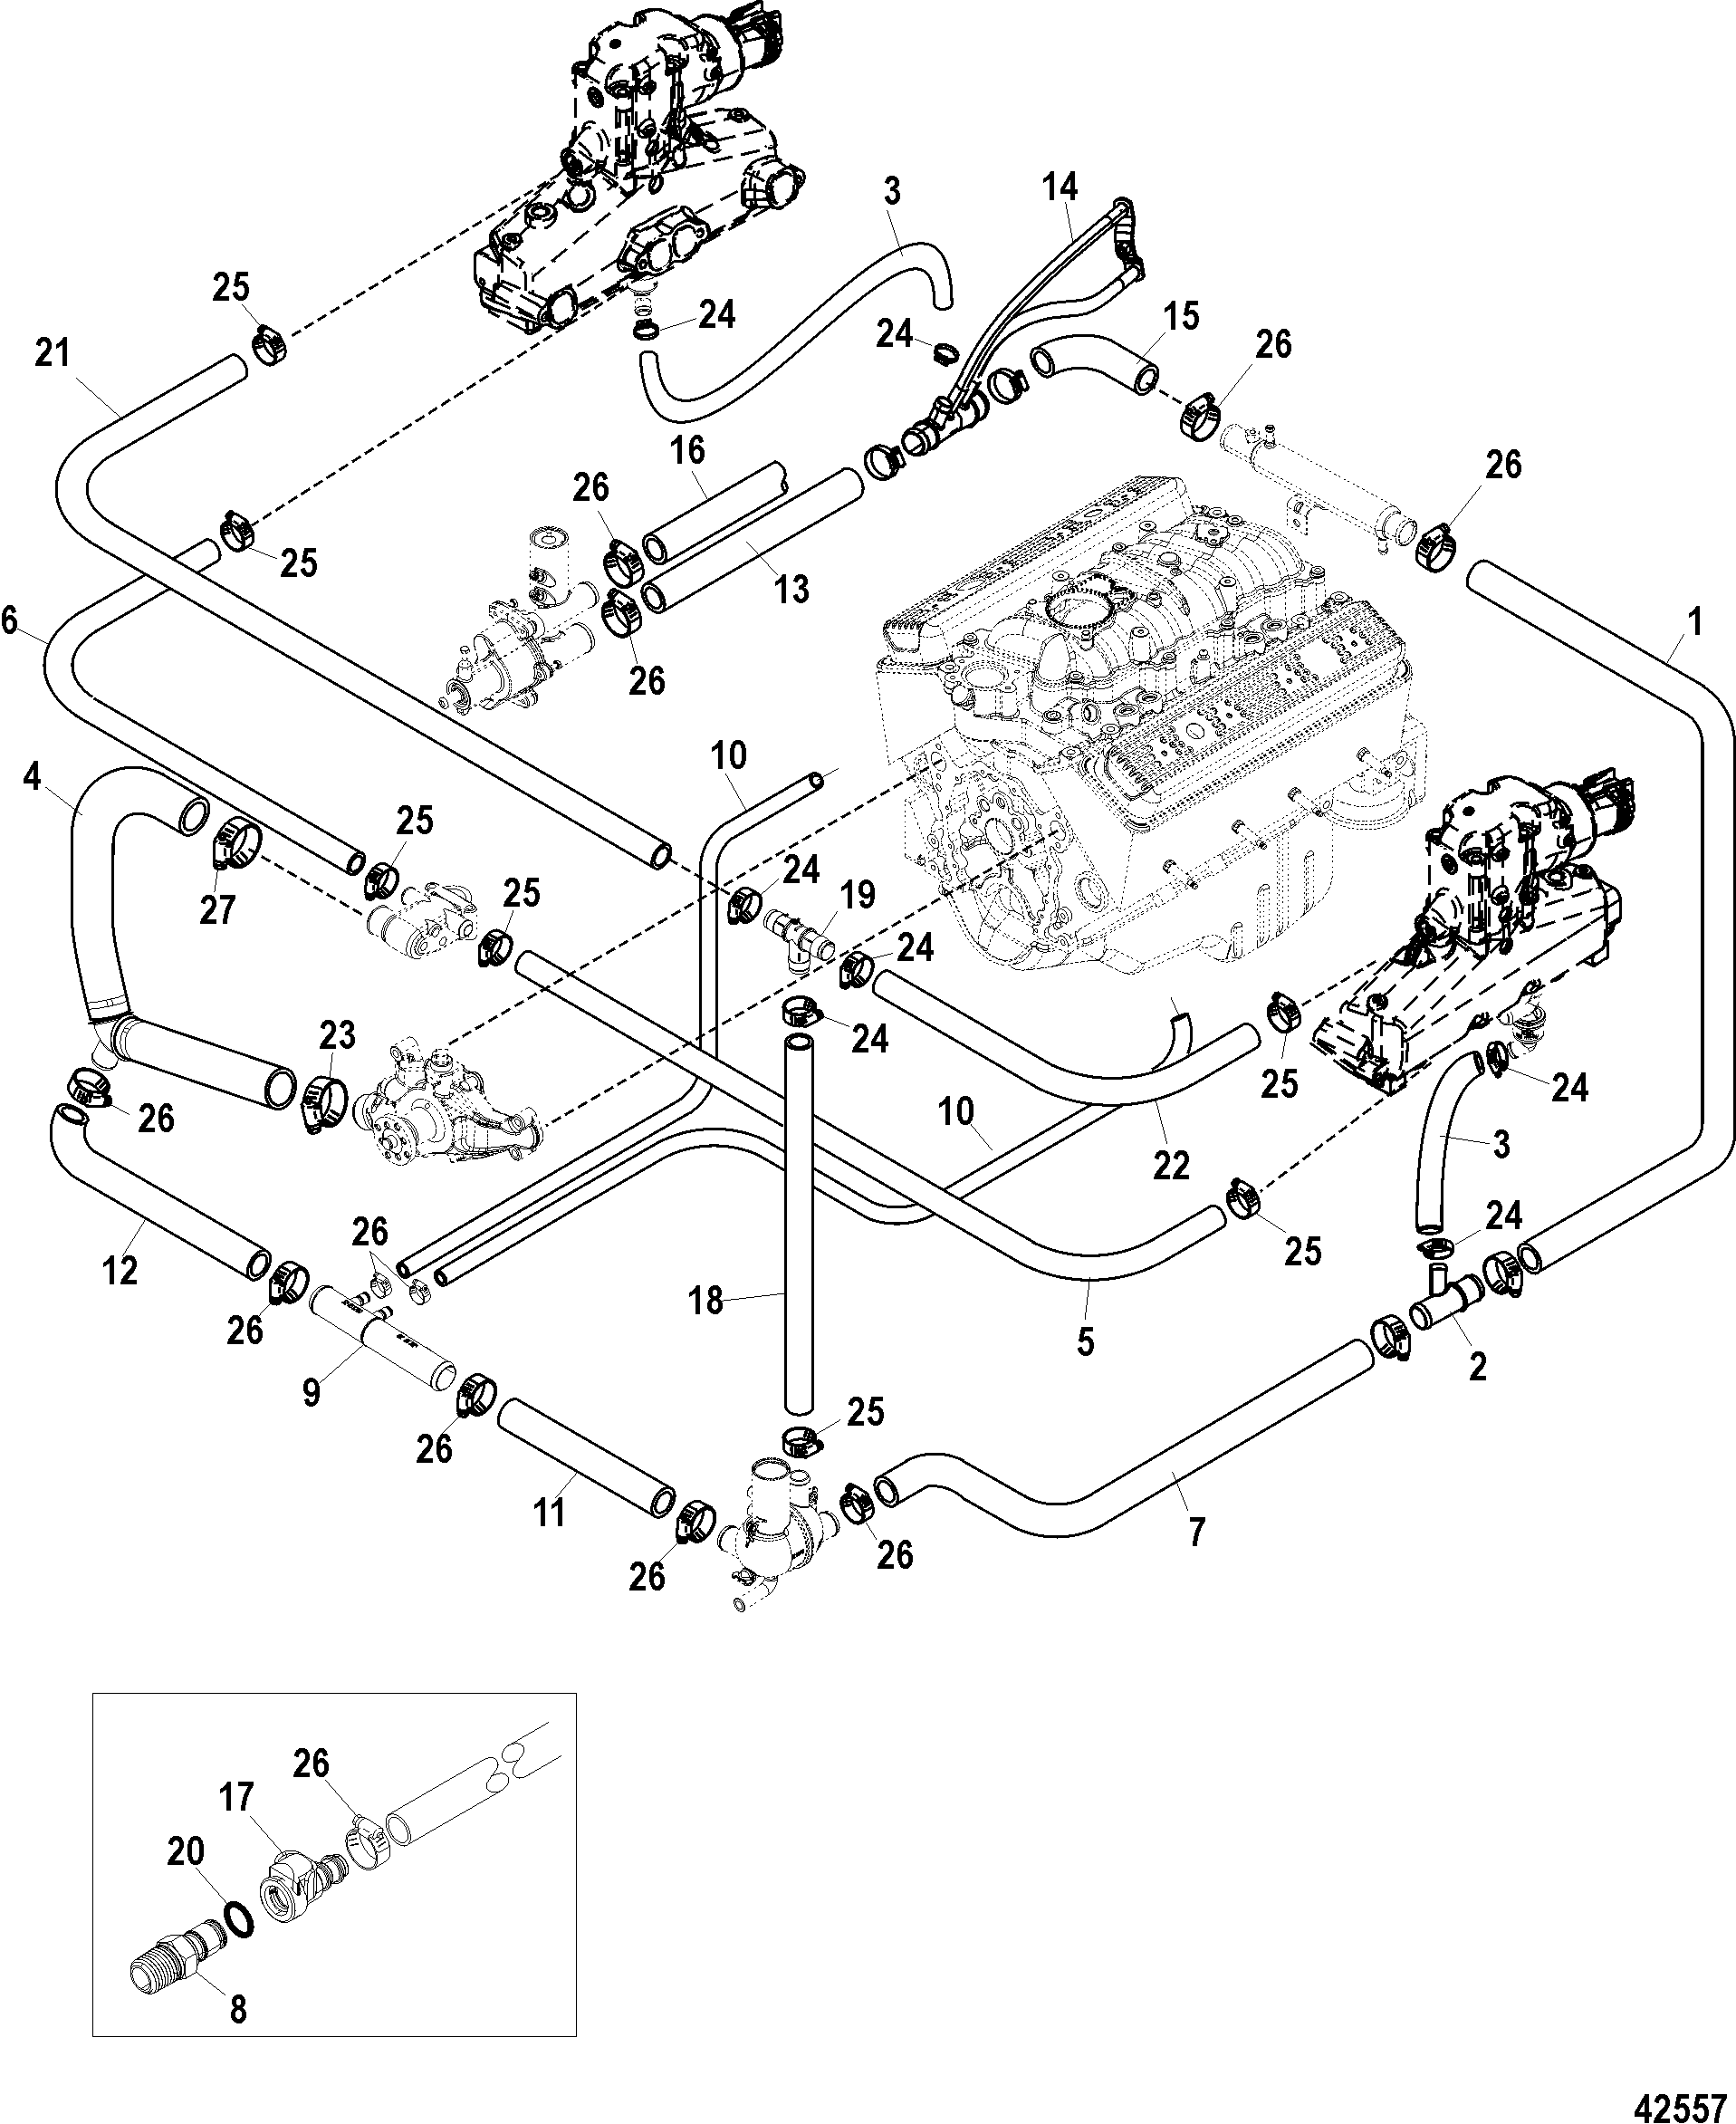 Mercruiser 57l Mpi Towsport With Gen Coil Wire Diagram For 95 S10 Standard Cooling System